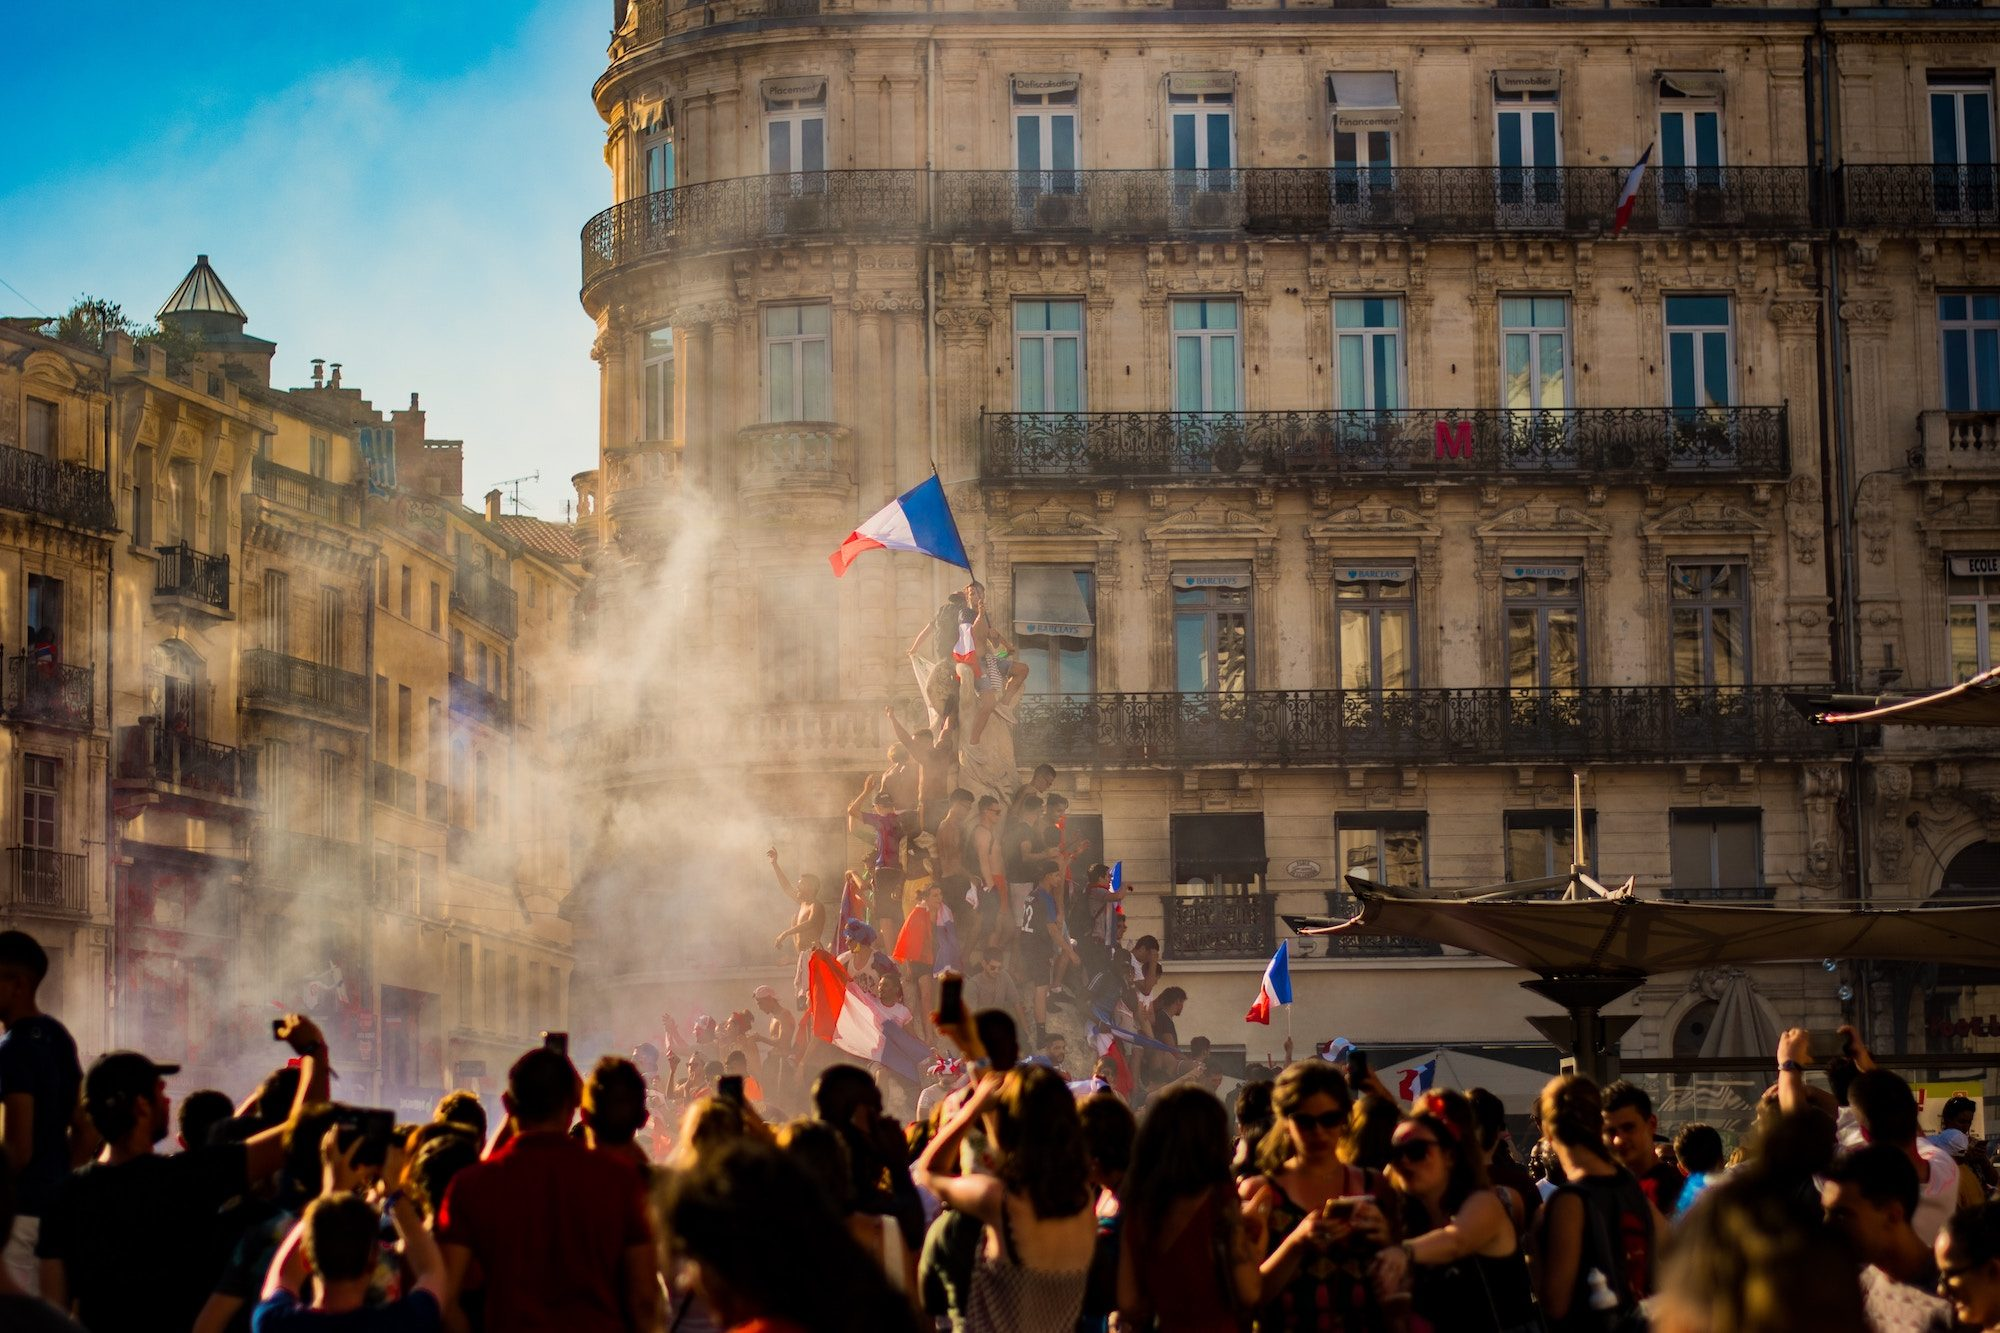 HiP Paris Blog tells the story of la rentrée, before which Paris summer is all about outdoor events like Bastille Day and Gay Pride.